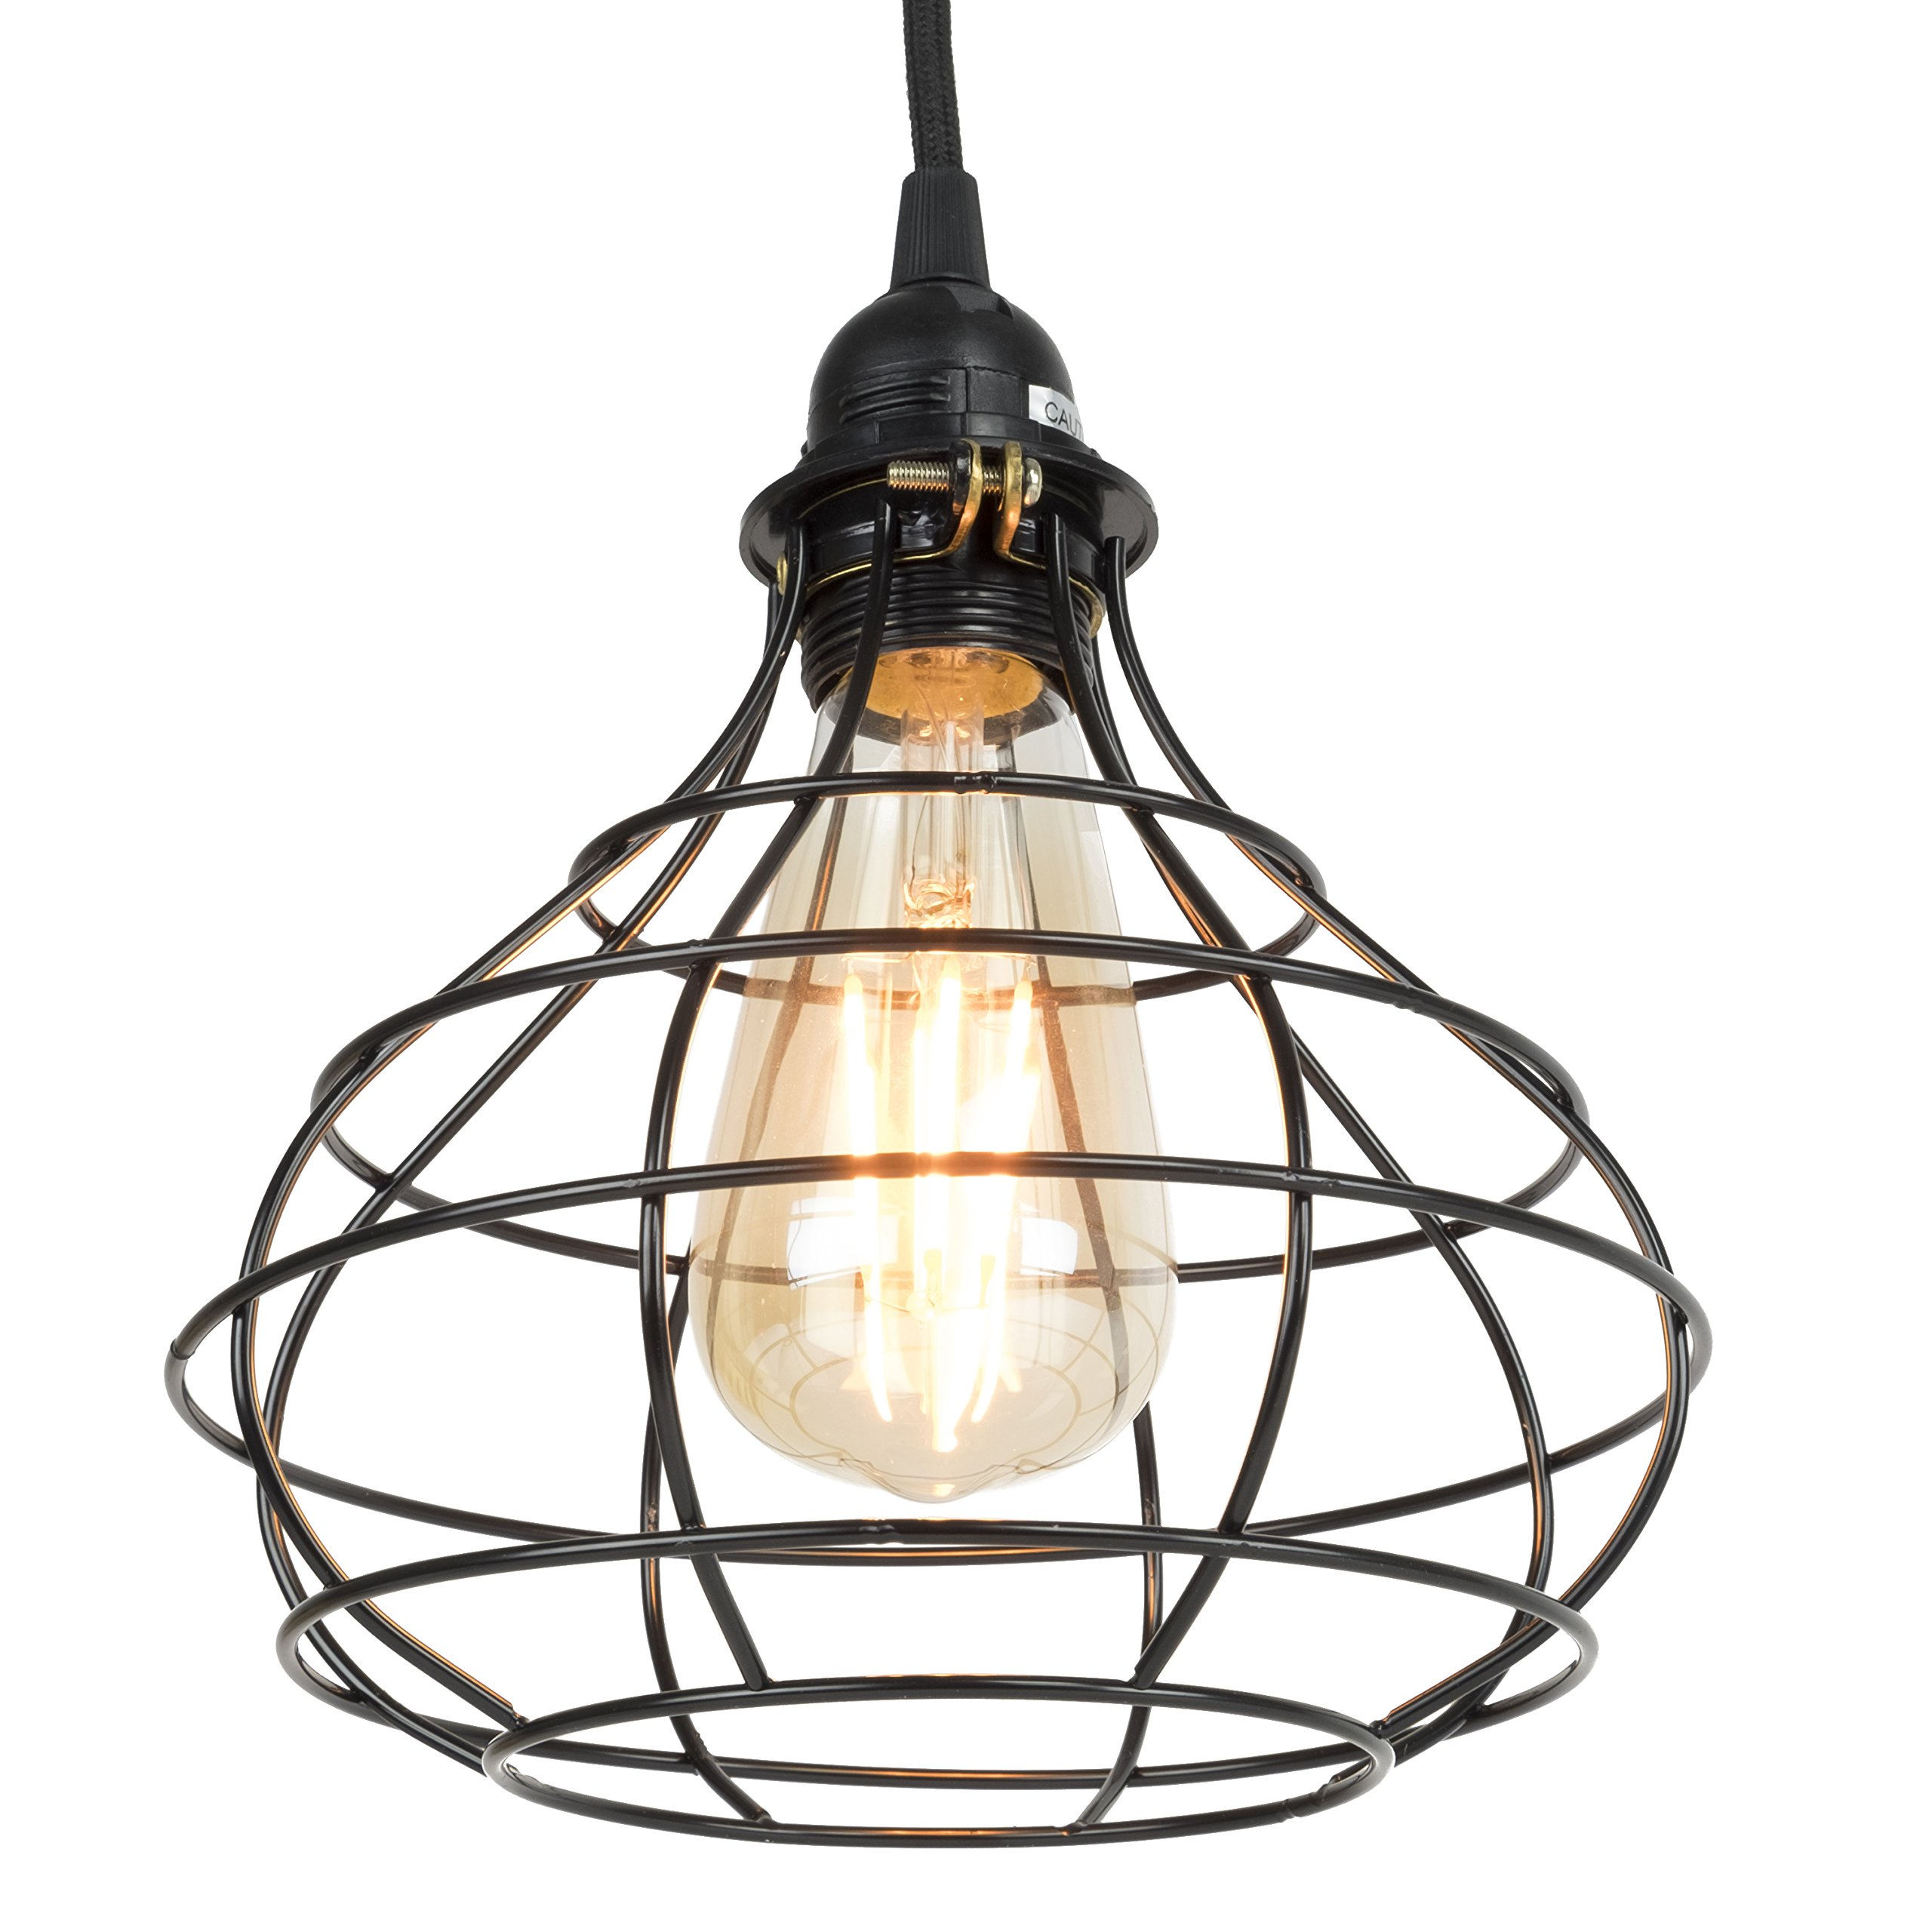 Industrial Cage Pendant Light with 15' Black Fabric Plug-in Cord and Toggle Switch Includes Edison LED Bulb in Black by Rustic State (Image #5)